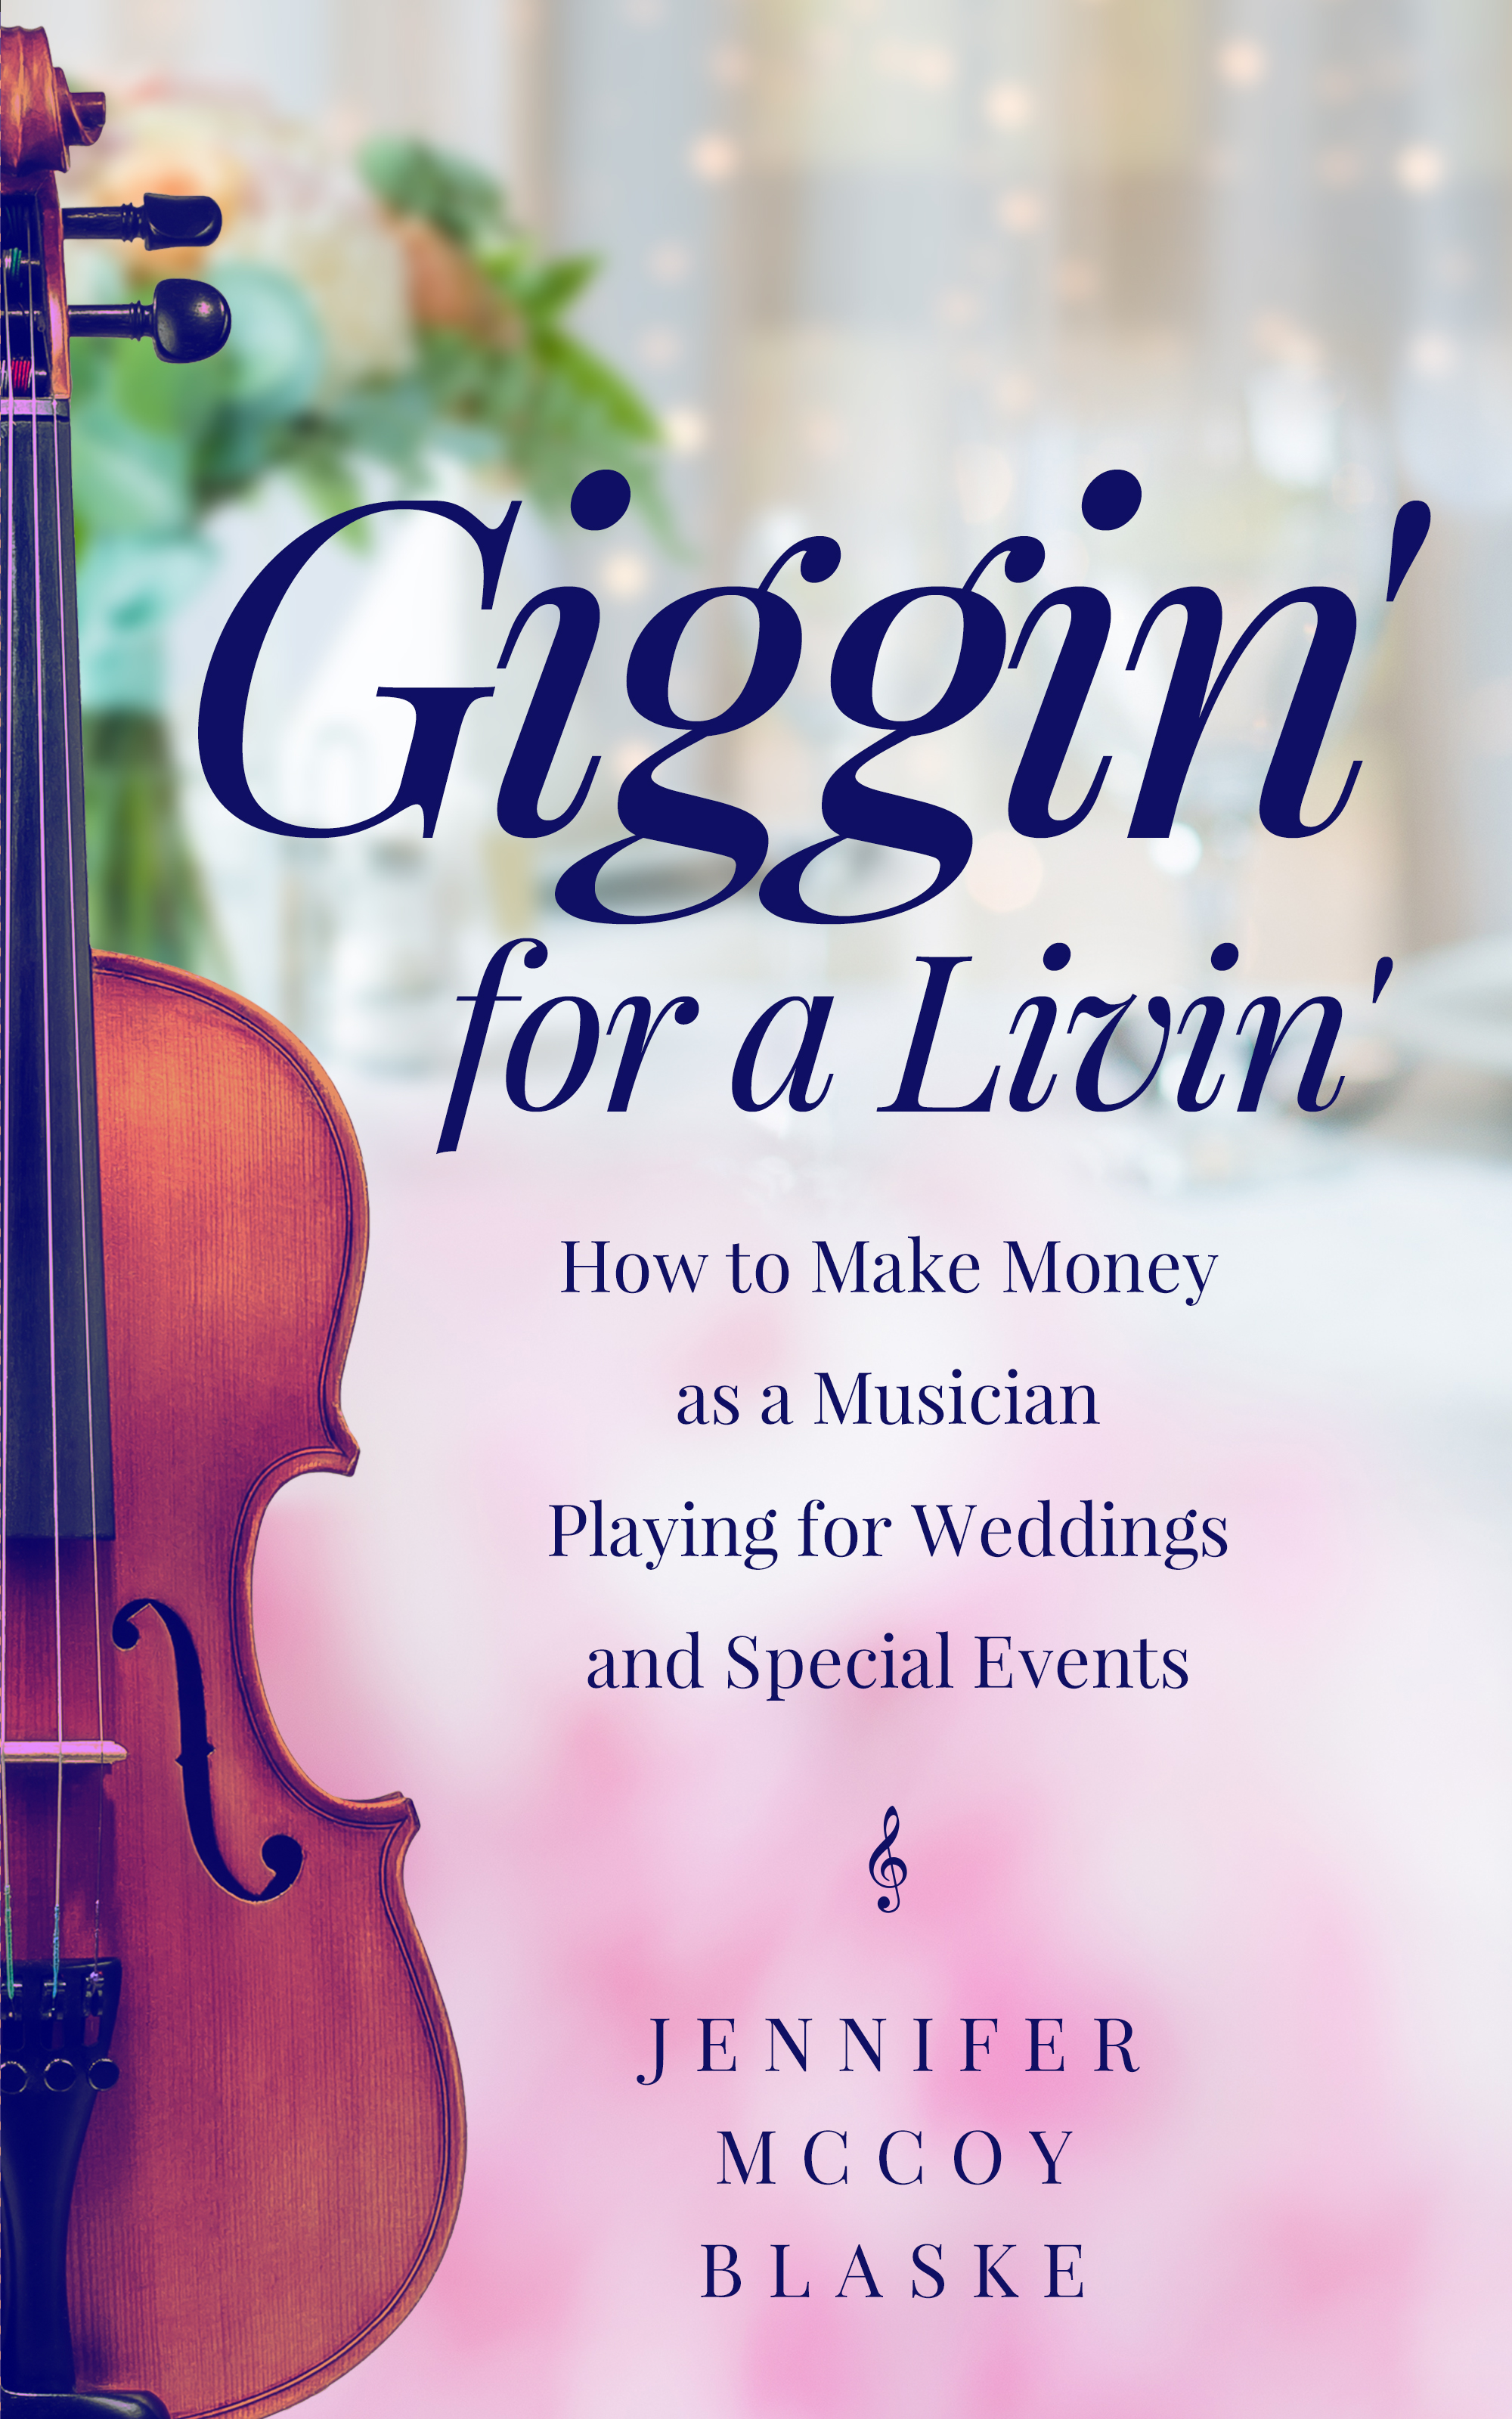 How musicians can get wedding gigs